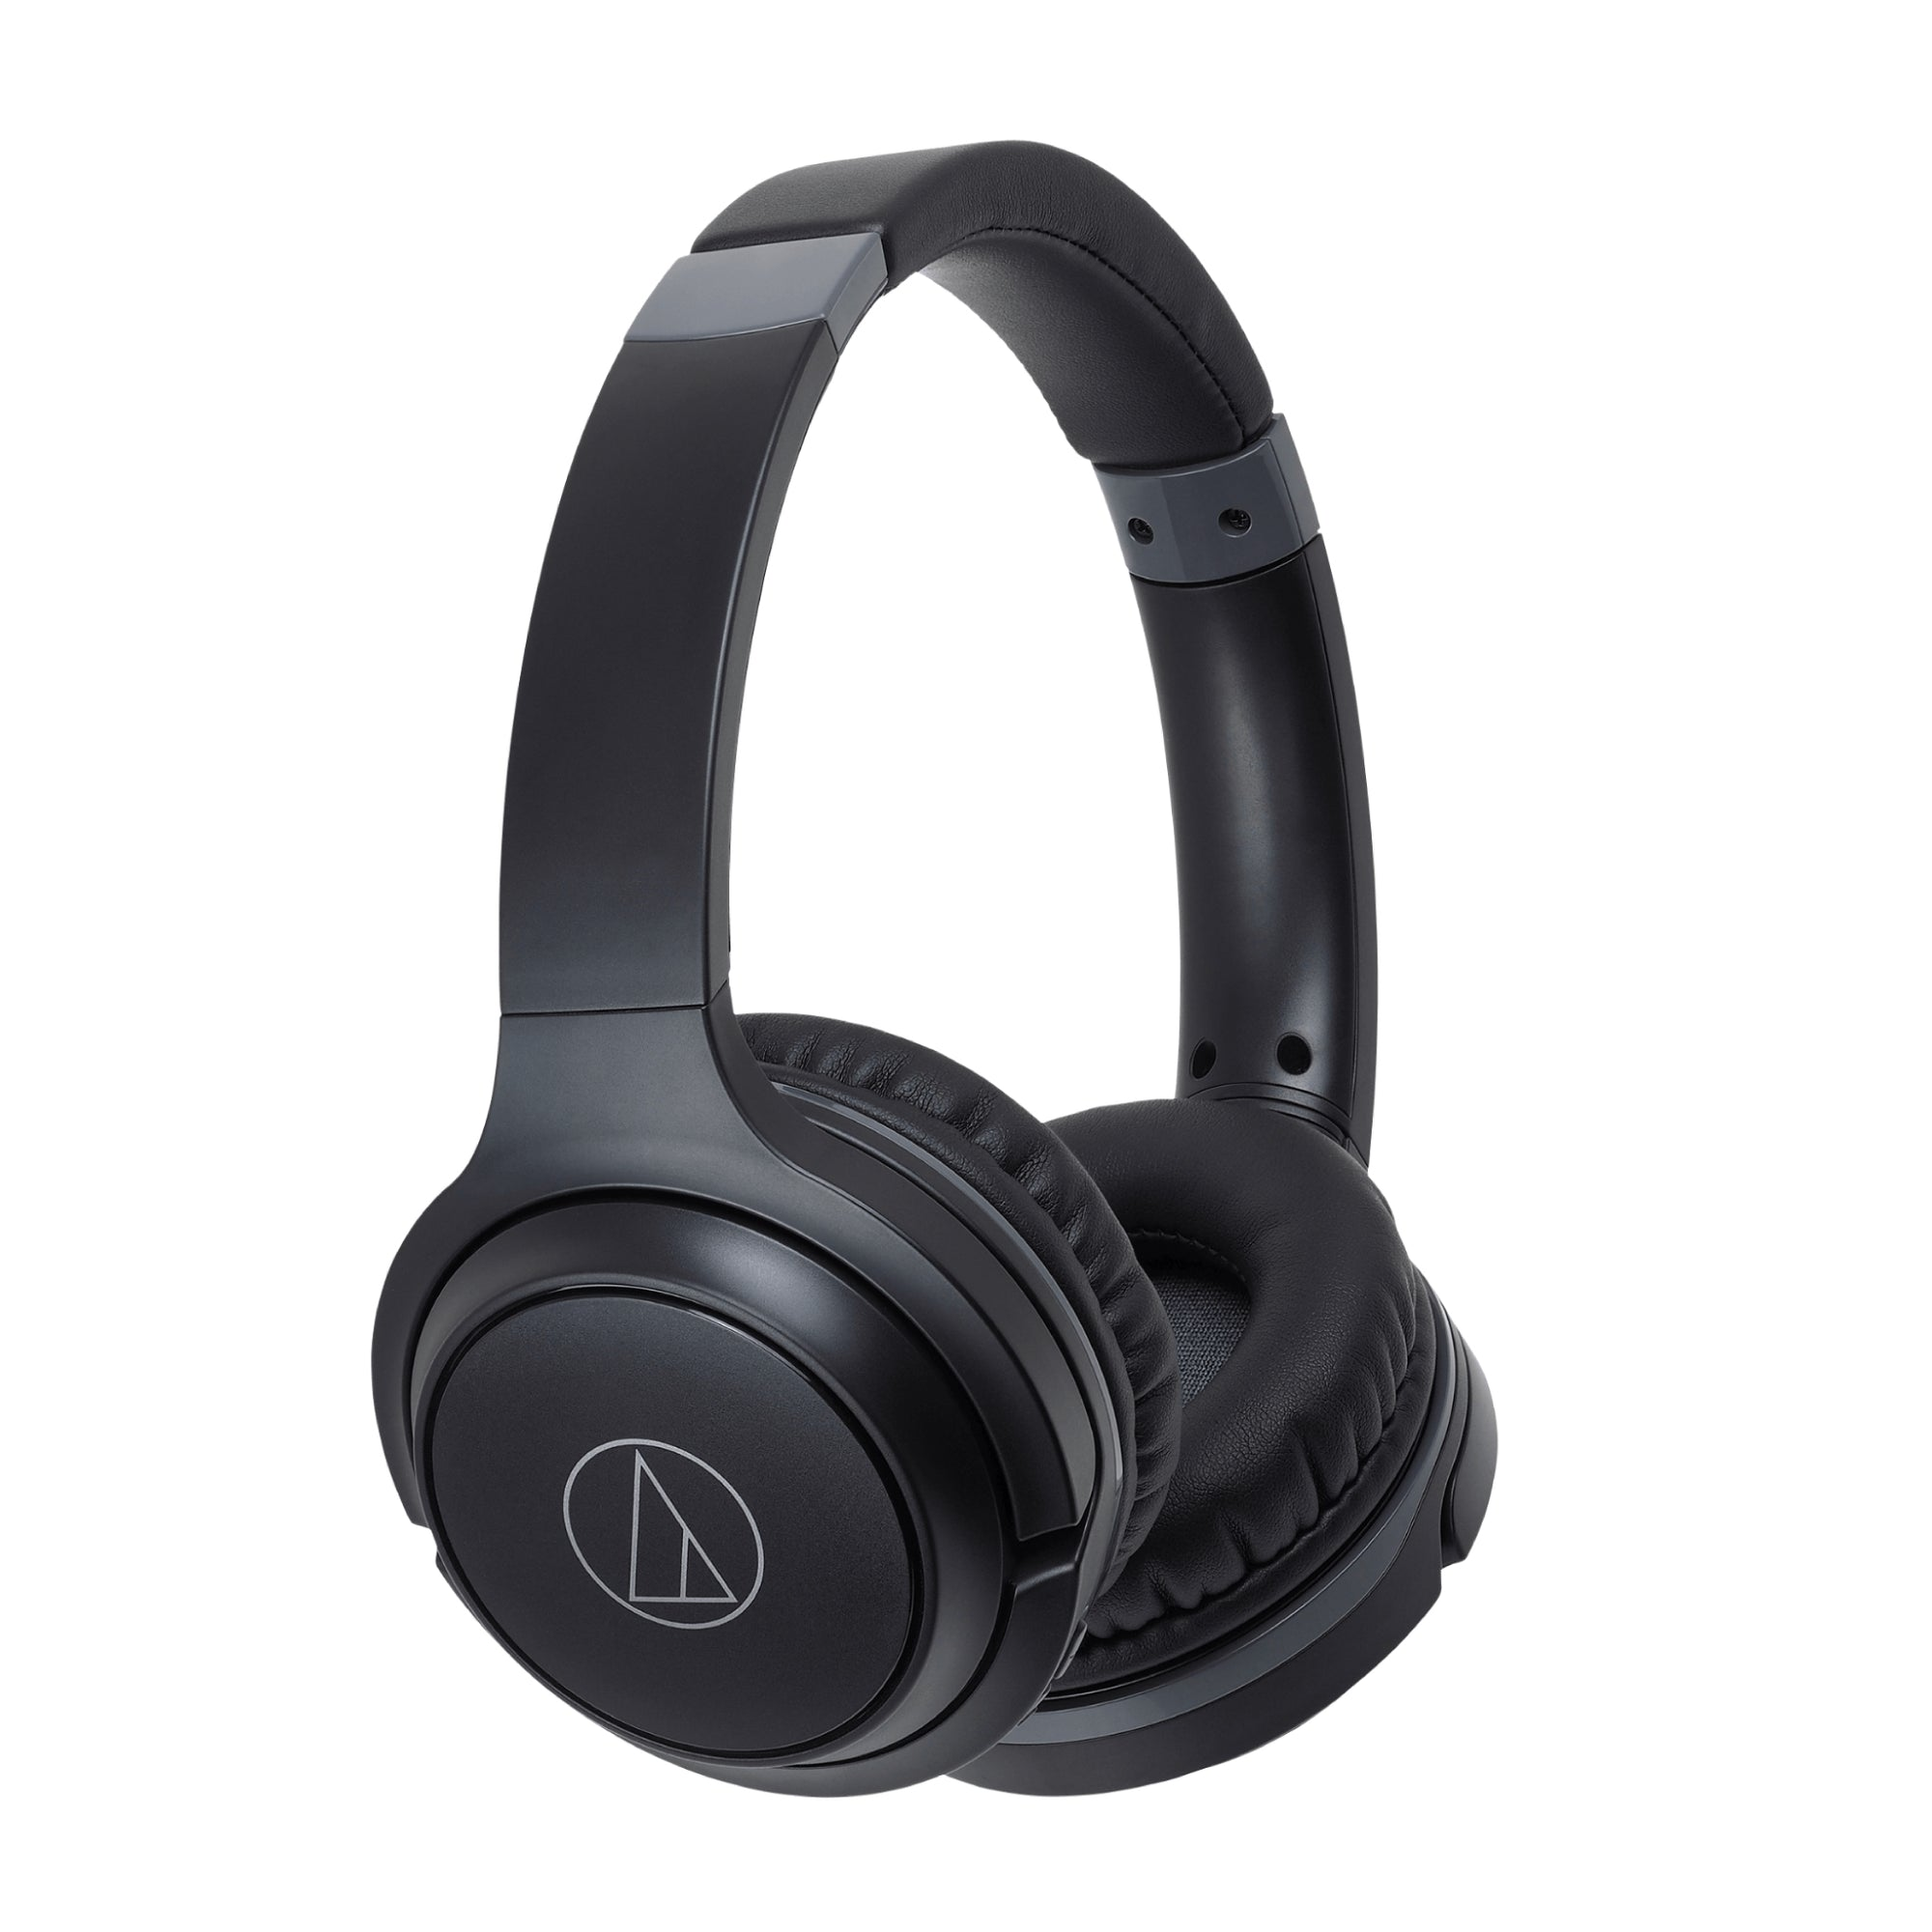 Audio-Technica S200BT Wireless Headphone